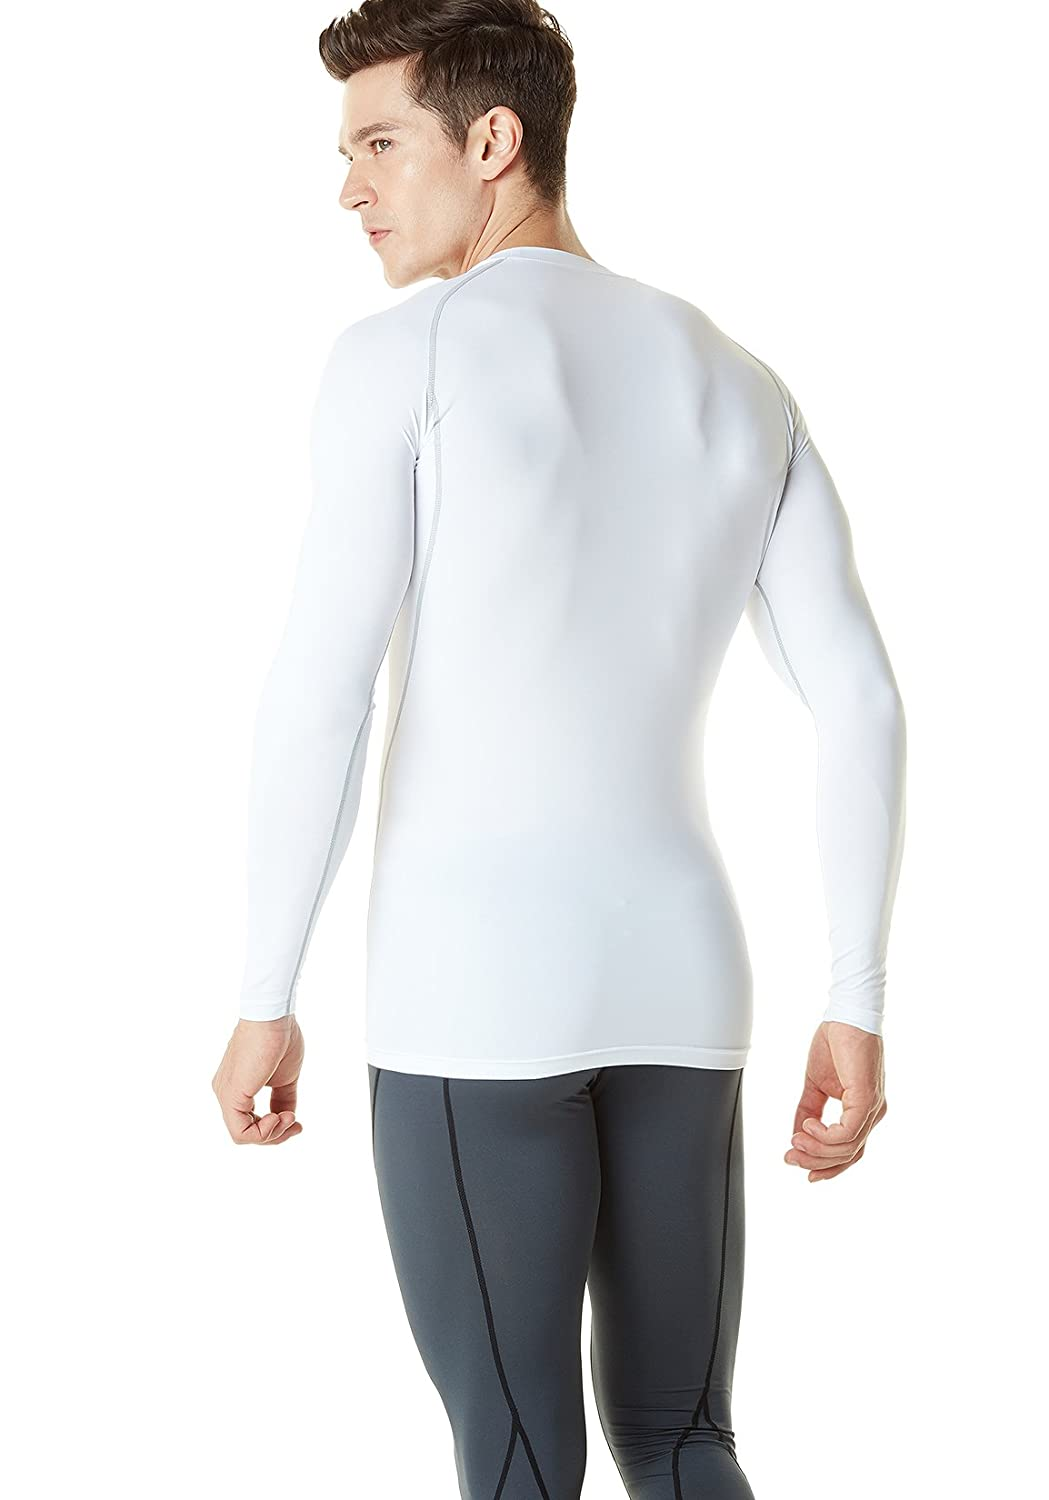 TSLA Mens Thermal Wintergear Compression Baselayer Tops